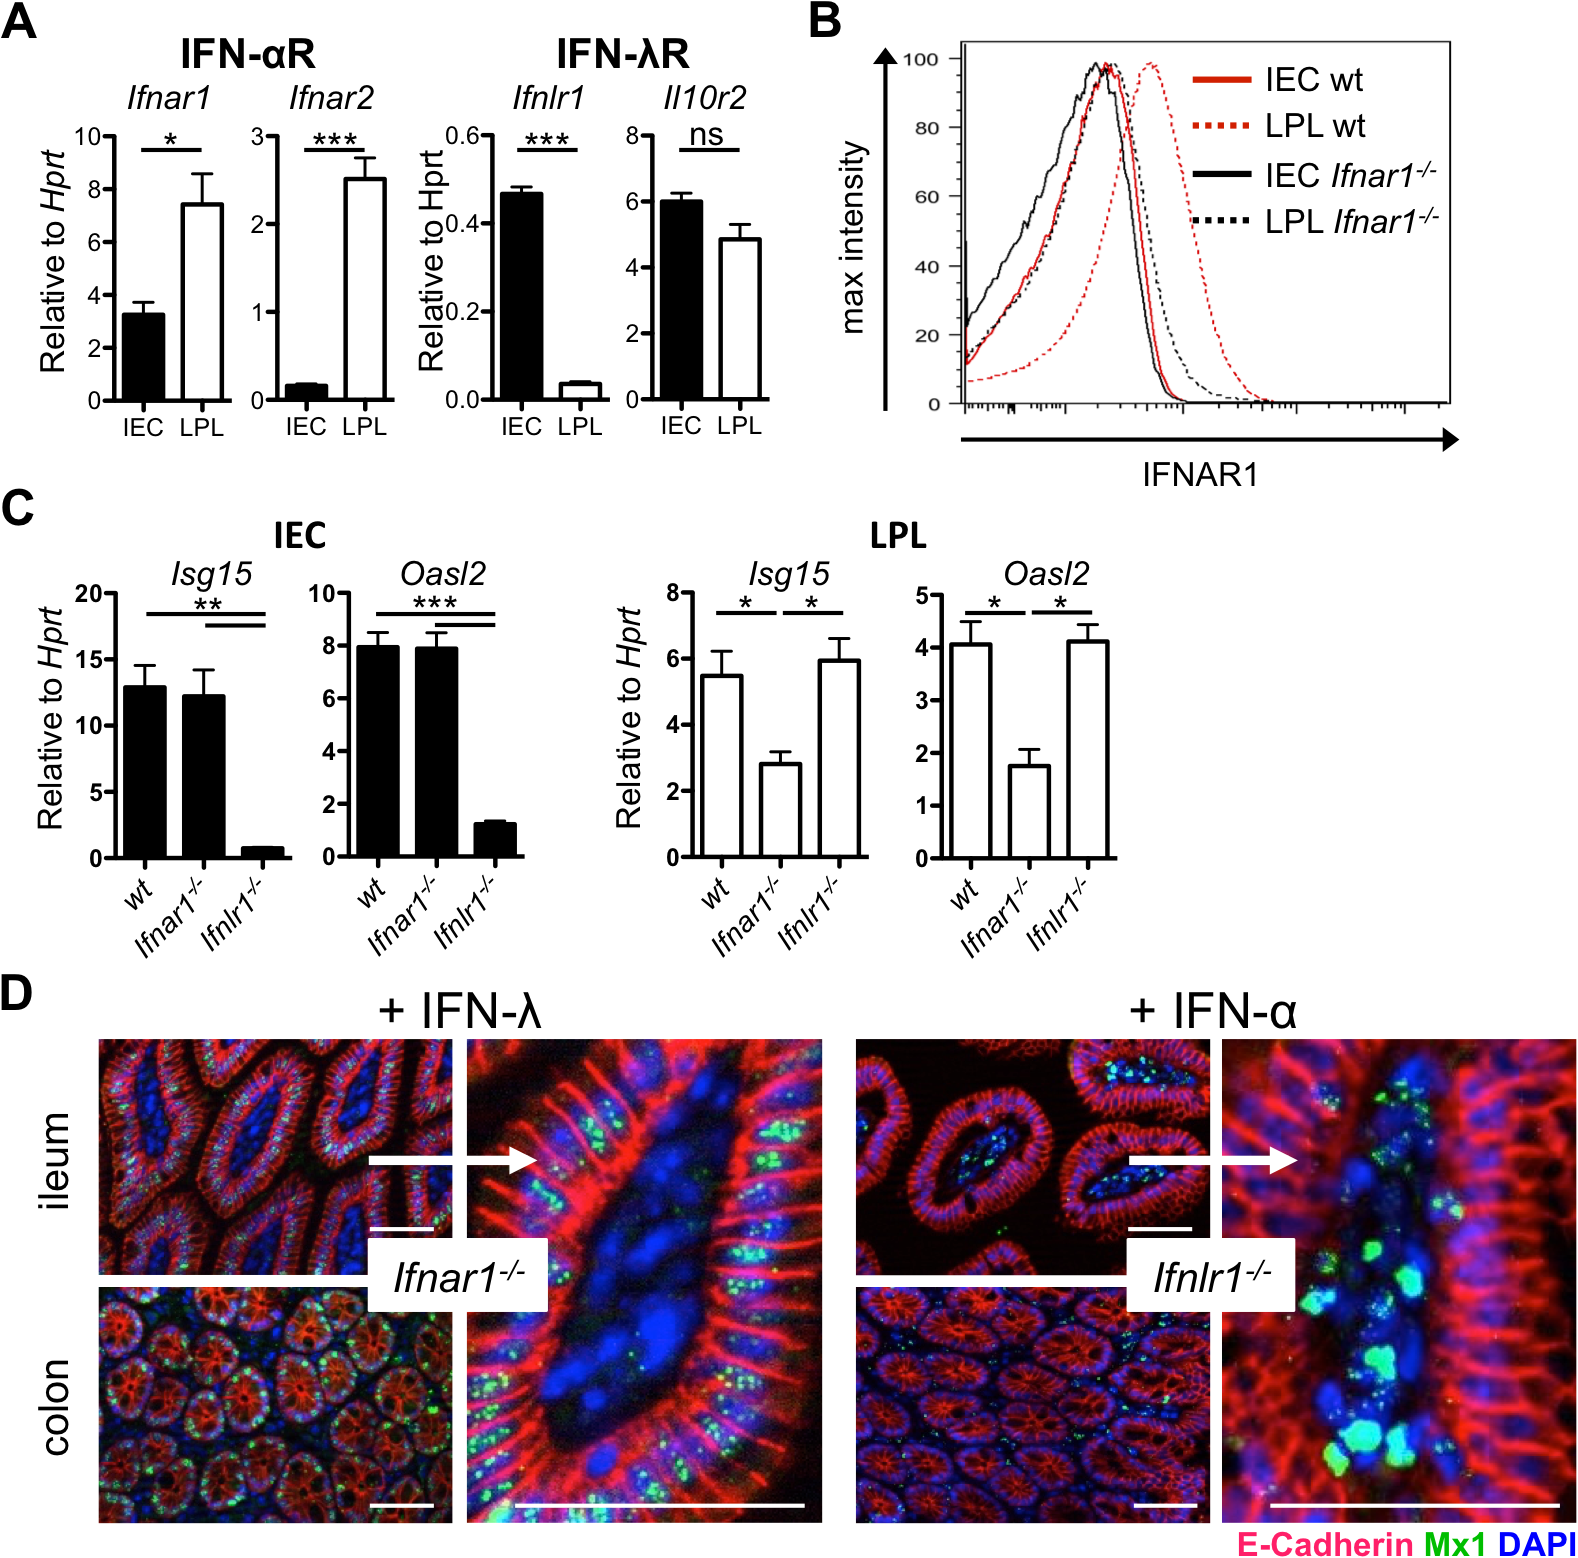 Intestinal epithelial cells minimally express IFN-α/β receptor and do not respond to type I IFN.